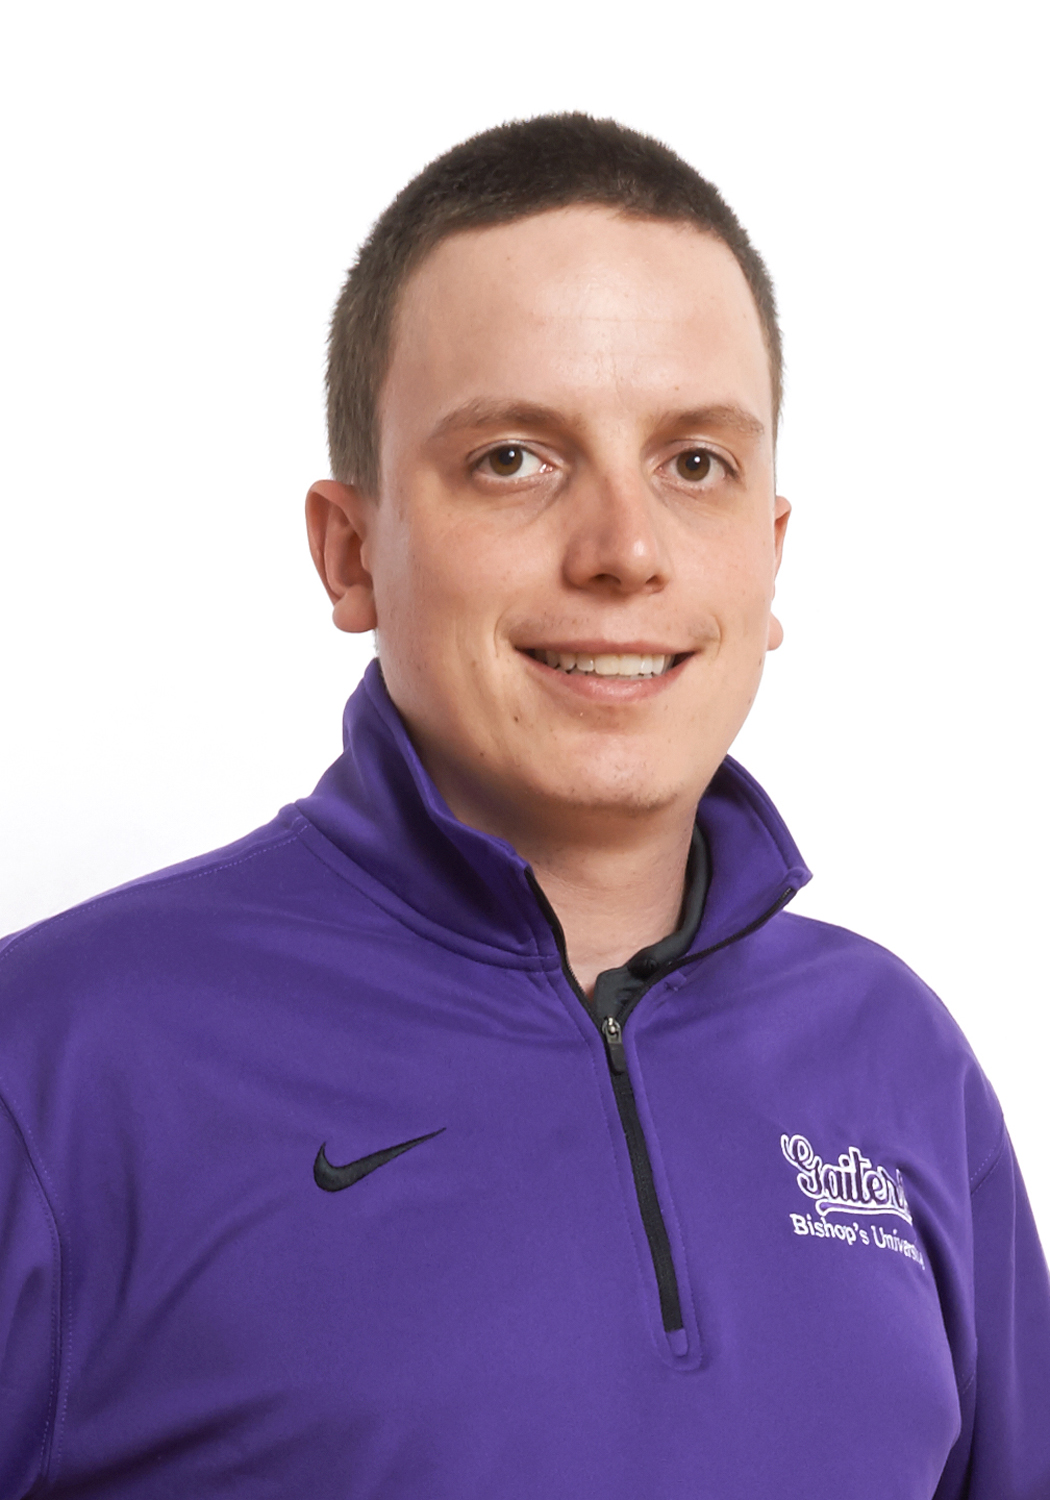 Martin Rourke, Sports Information Coordinator and Golf Coach for the Bishop's Gaiters